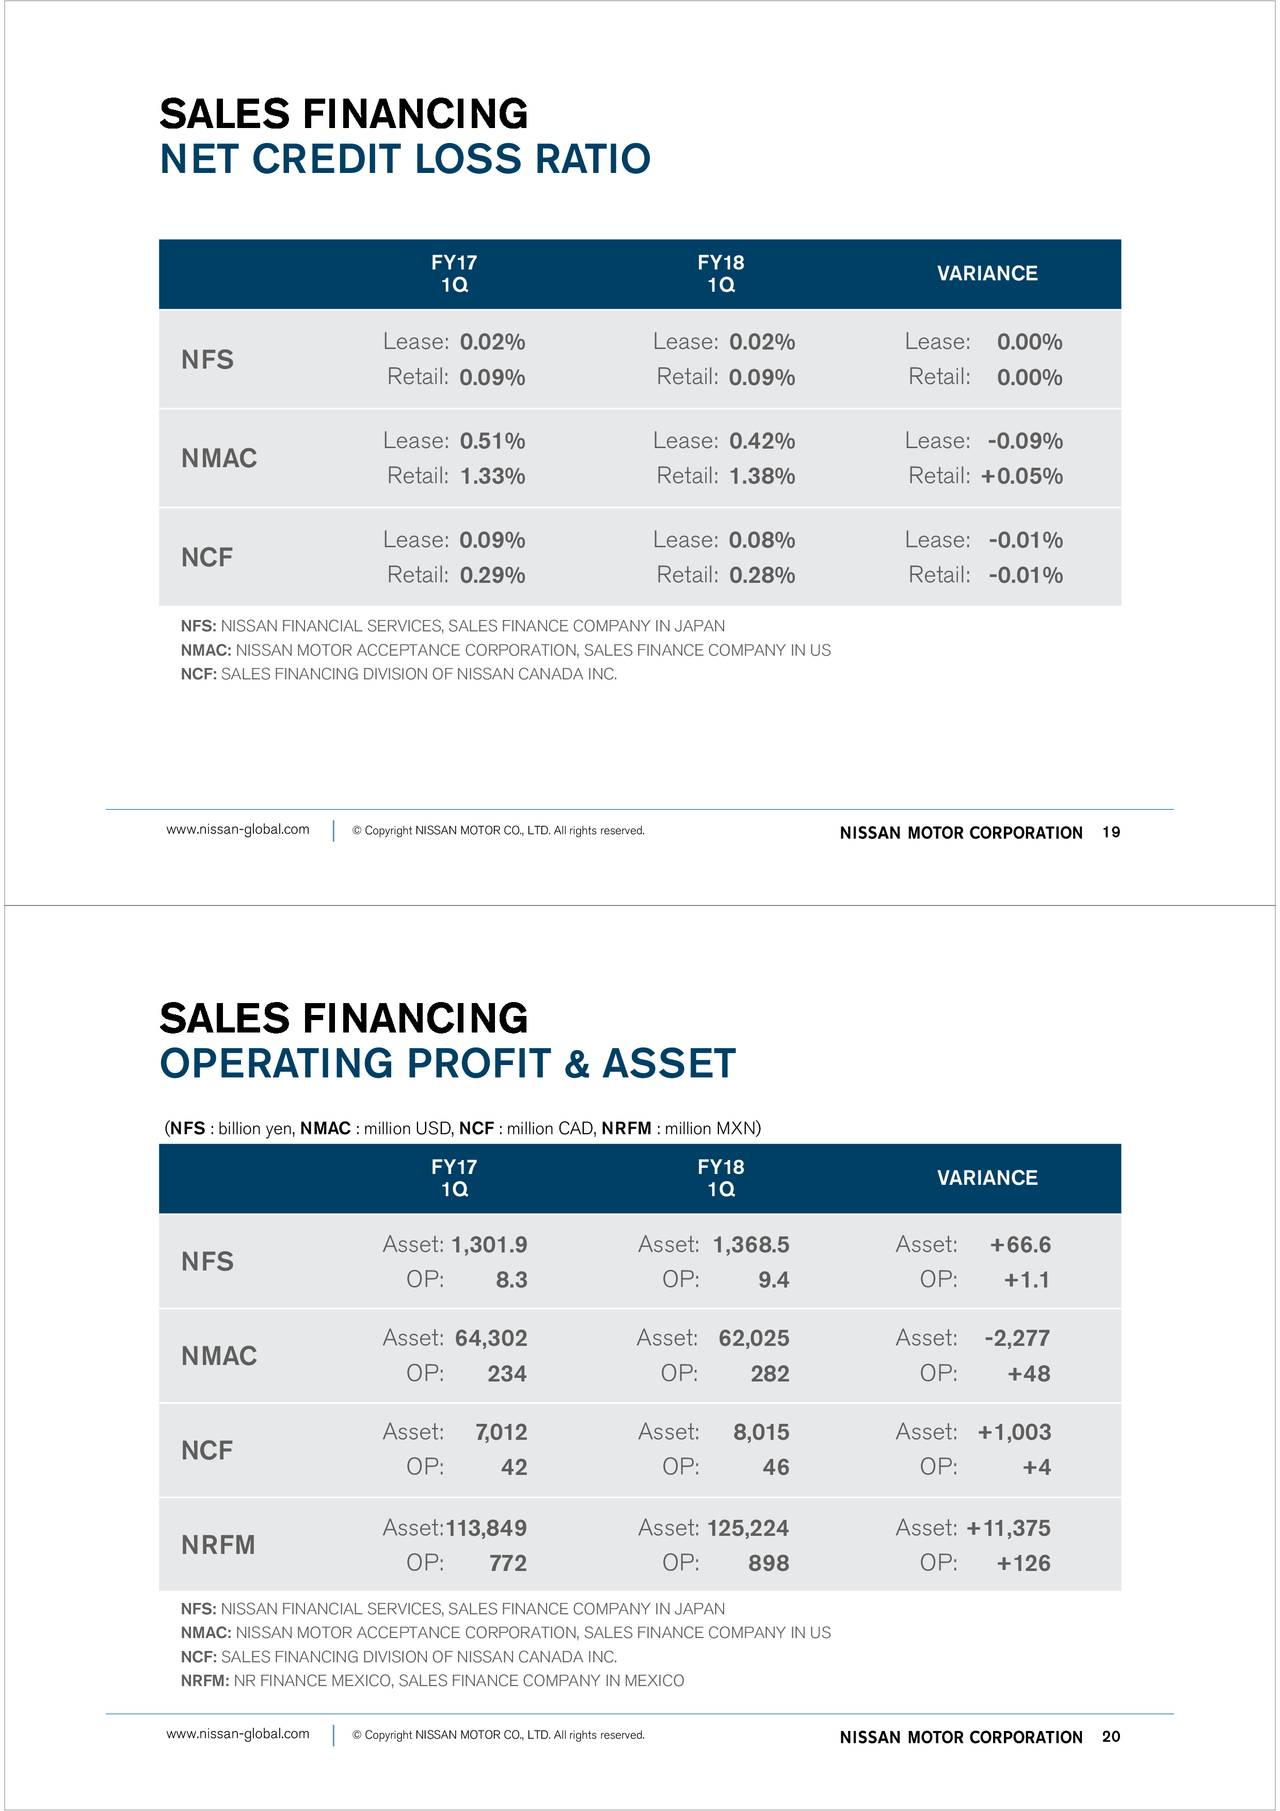 Nissan motor co ltd adr 2018 q1 results earnings for Nissan motor finance corporation